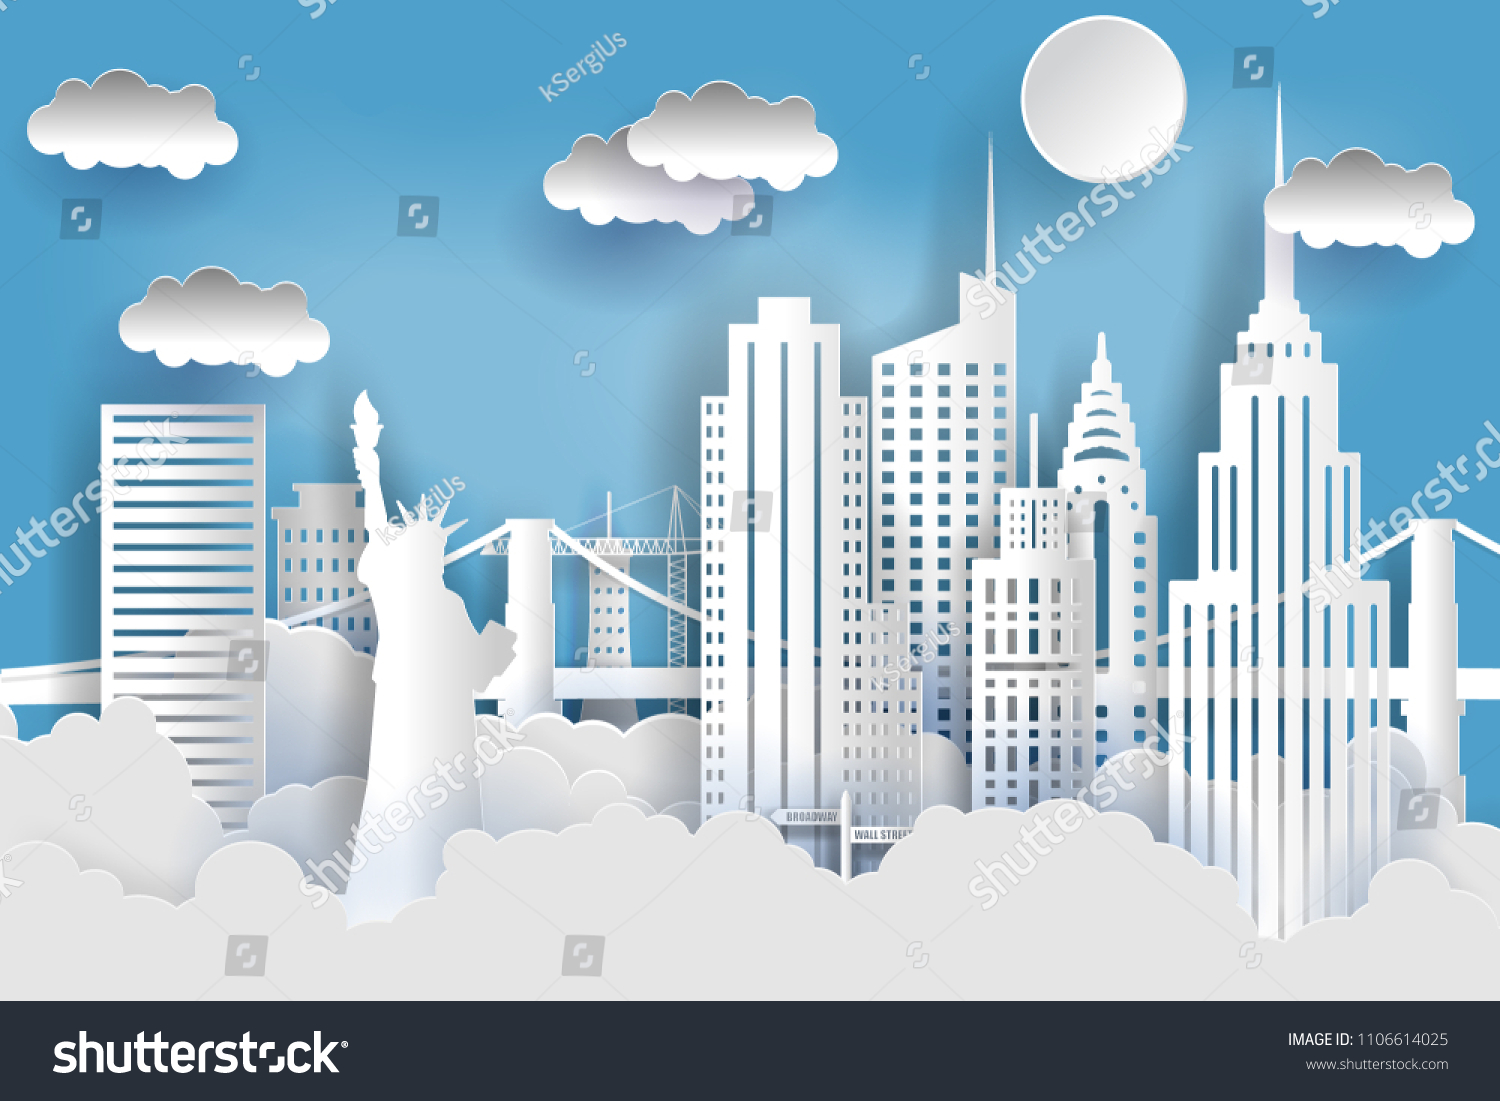 stock-vector-new-york-city-concept-paper